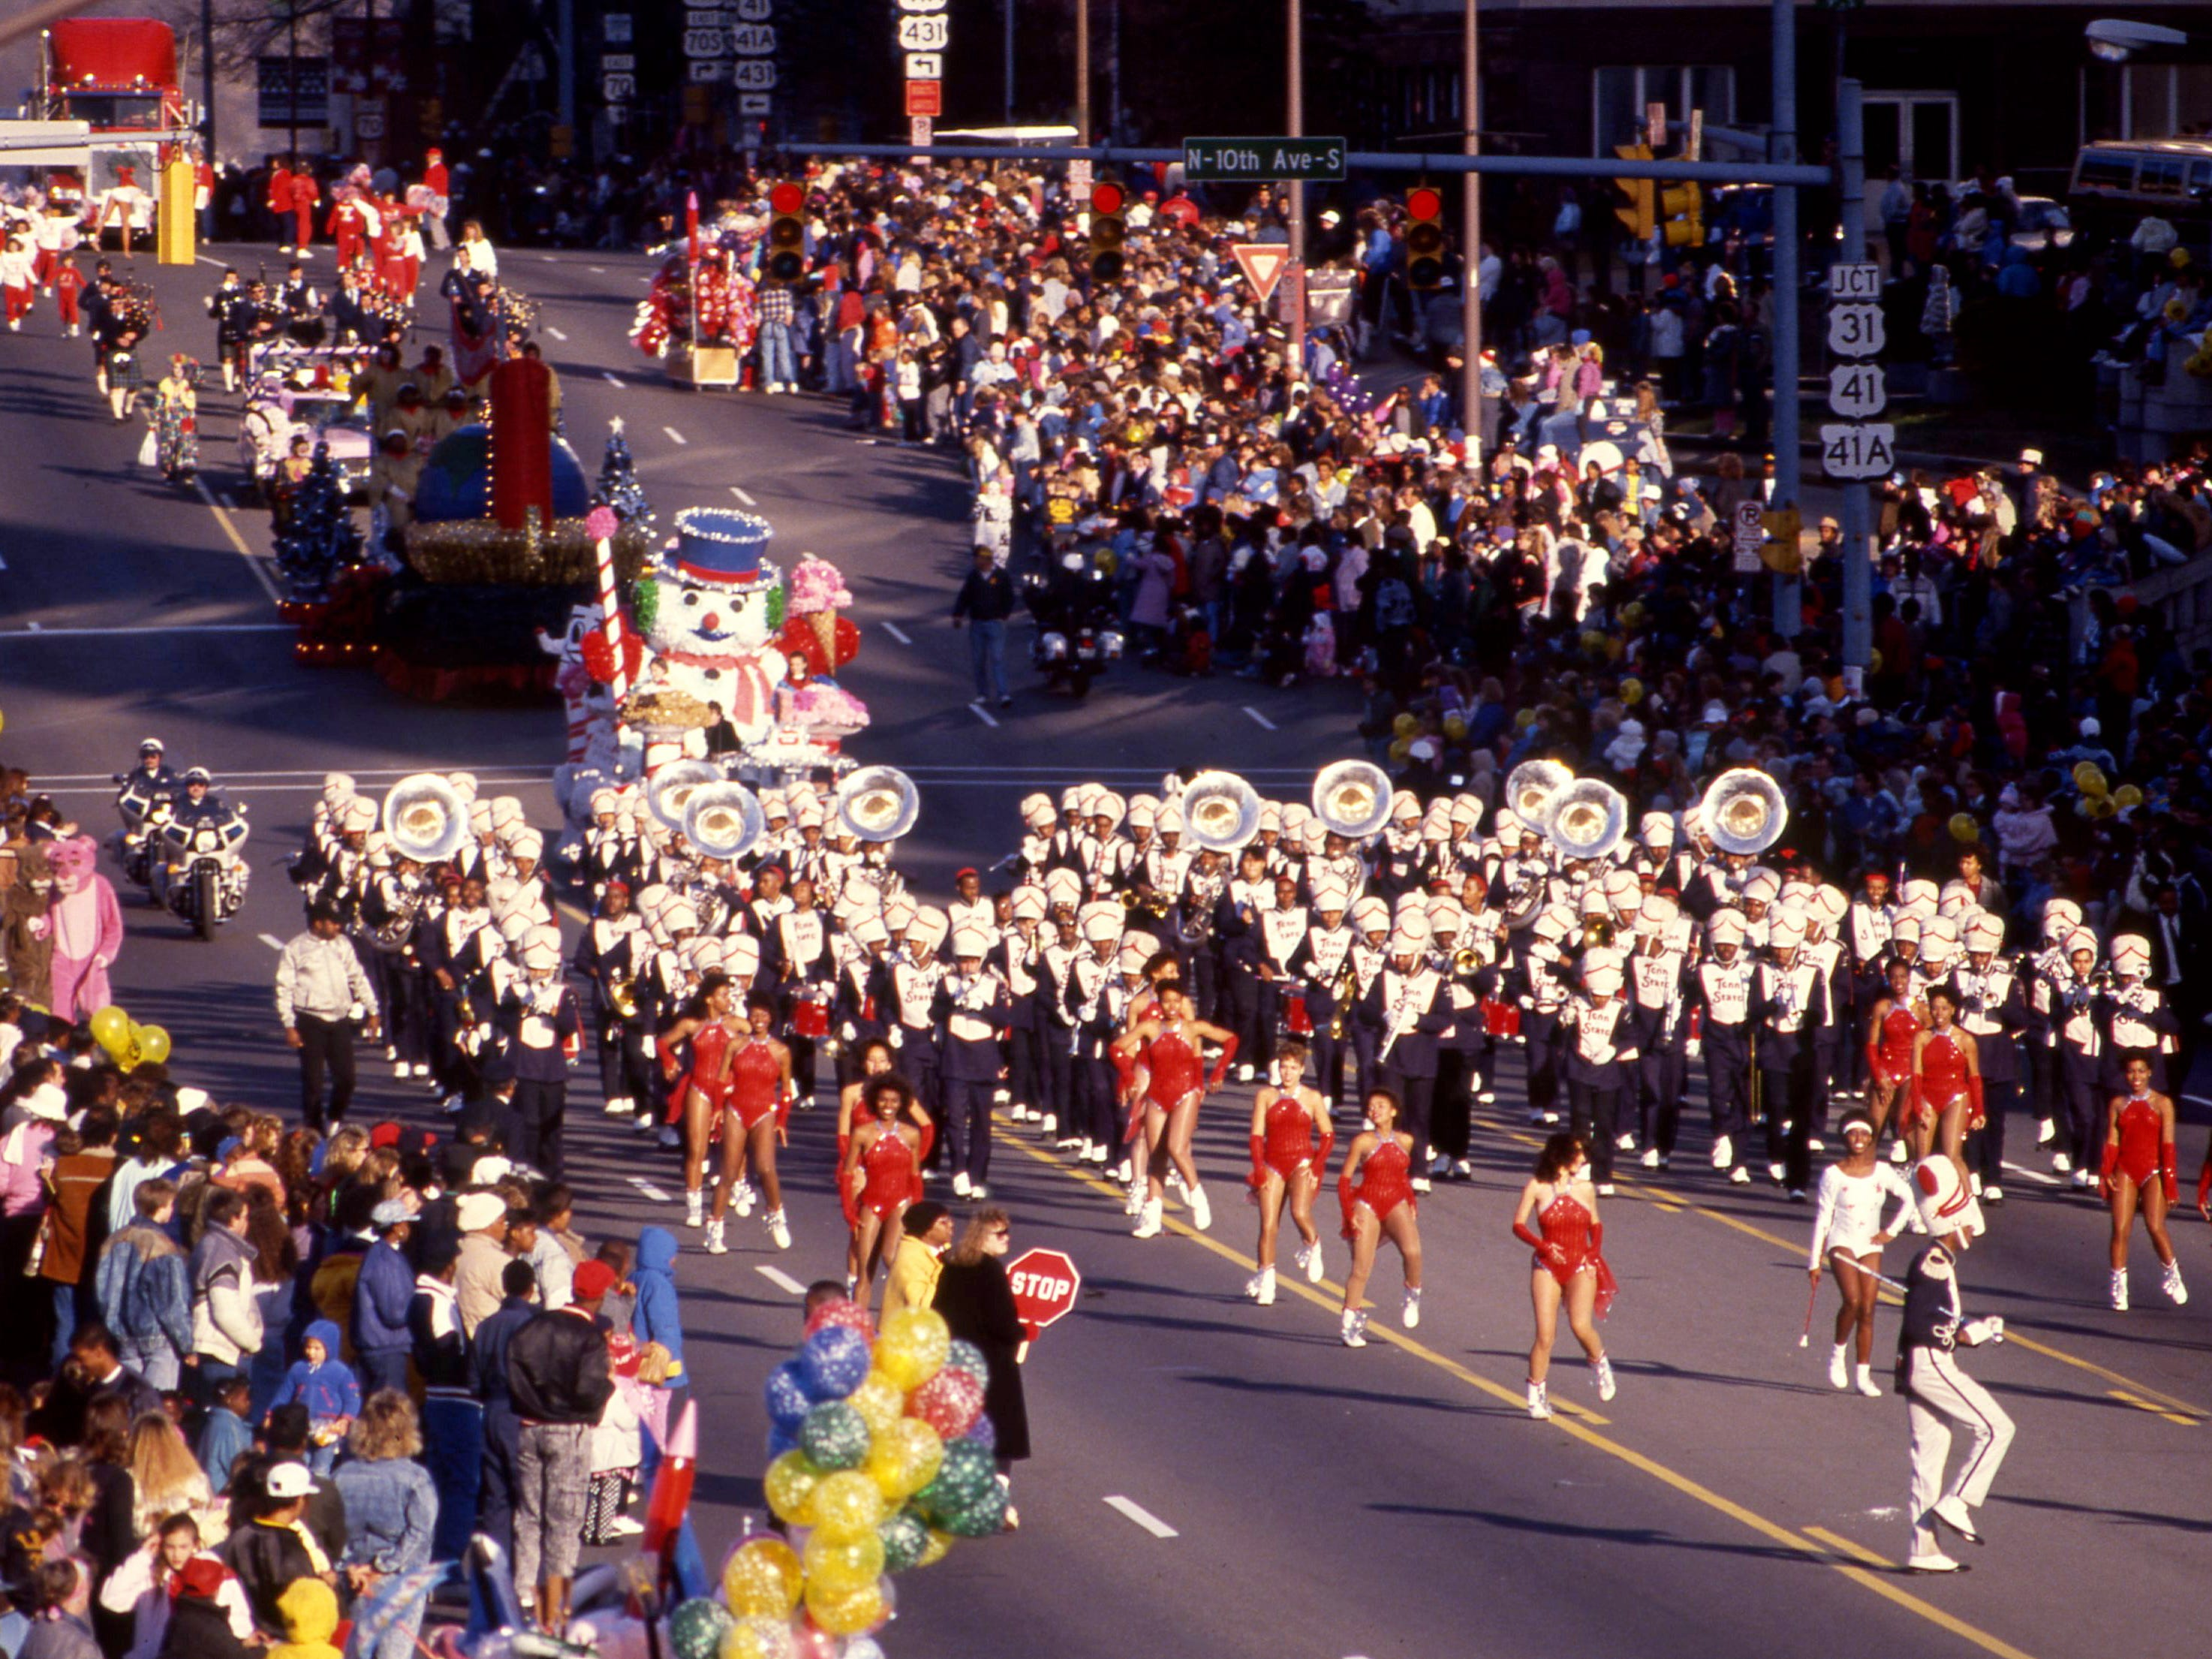 The Tennessee State University Aristocrat of Bands is another crowd favorite for its jazzy renditions of traditional Christmas carols during the annual Christmas parade Dec. 4, 1988.